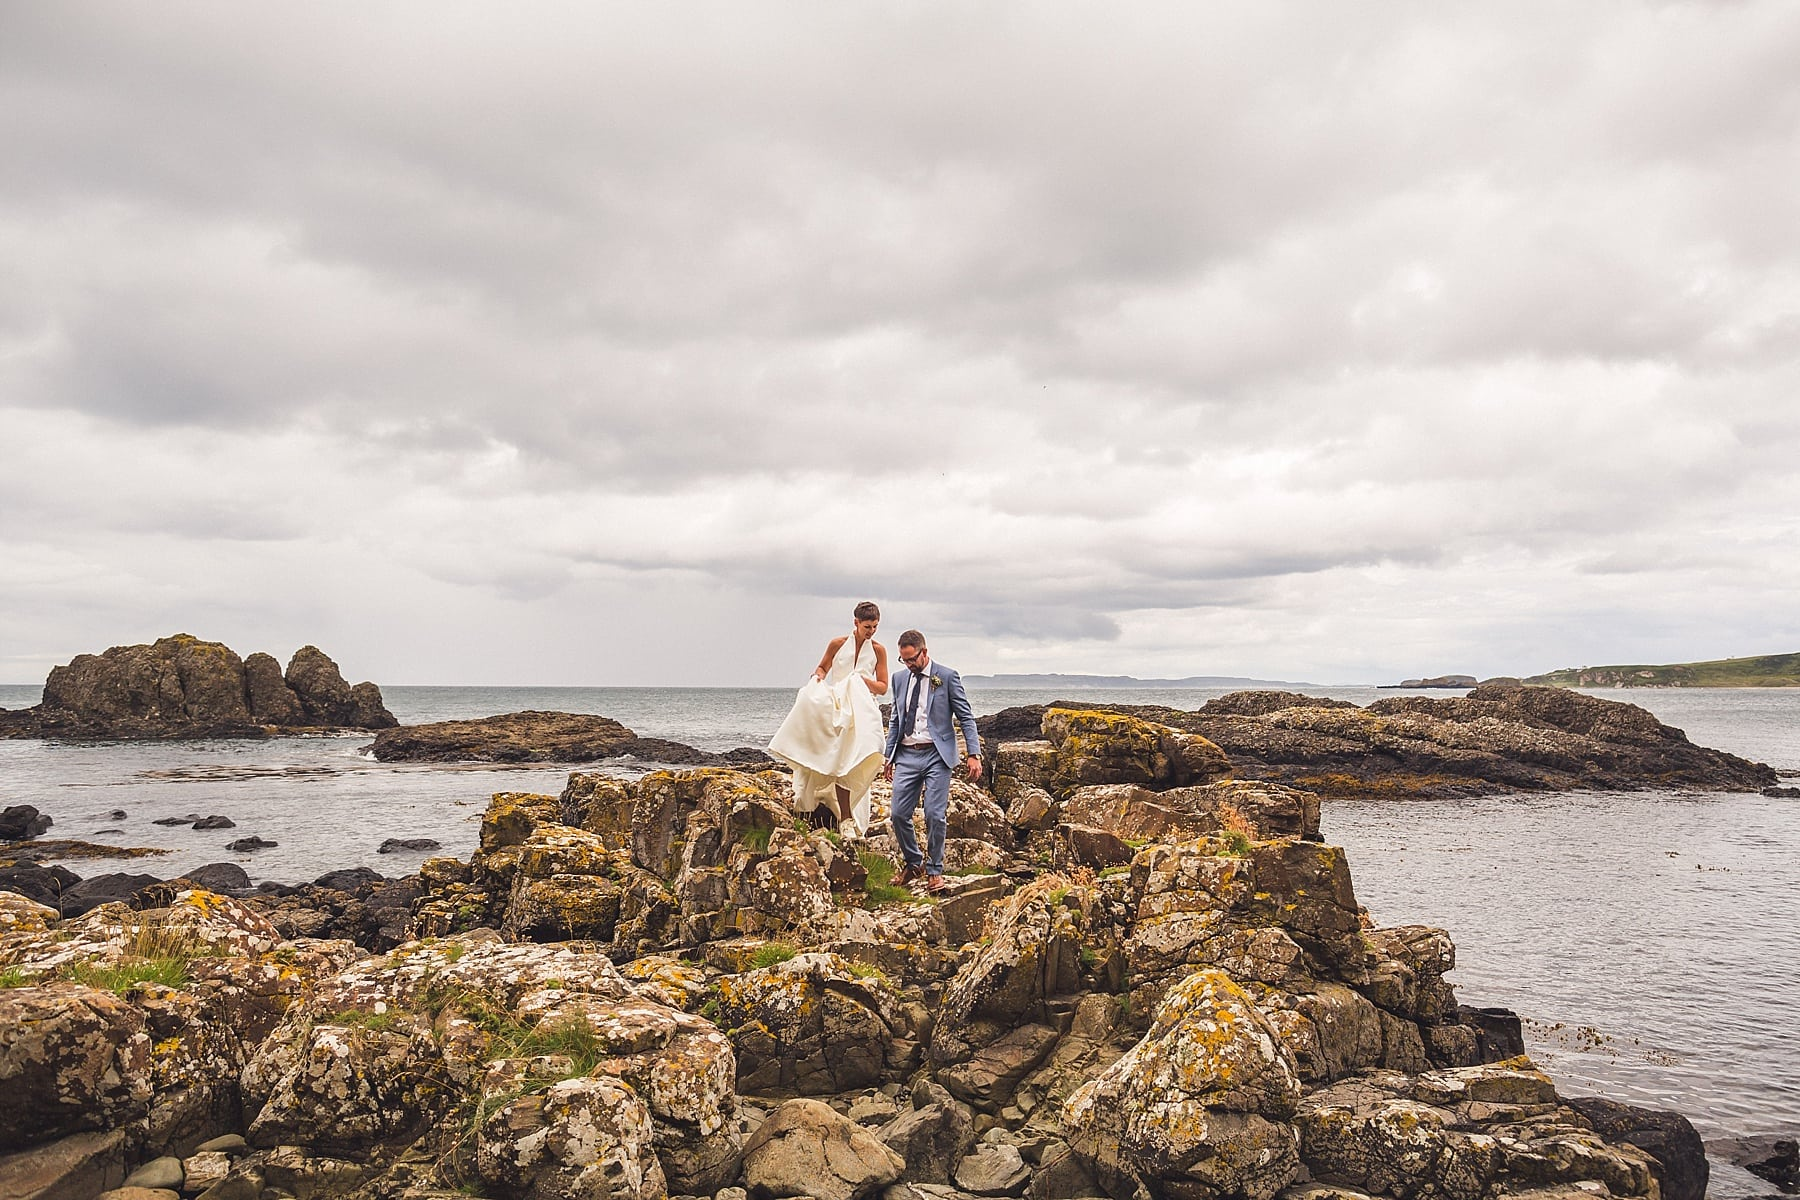 North coast wedding,northern ireland elopement,irish wedding photographer,bride and groom,wedding inspiration,bright,colourful,stylish,adventurous wedding,bride trainers,cliff top wedding,